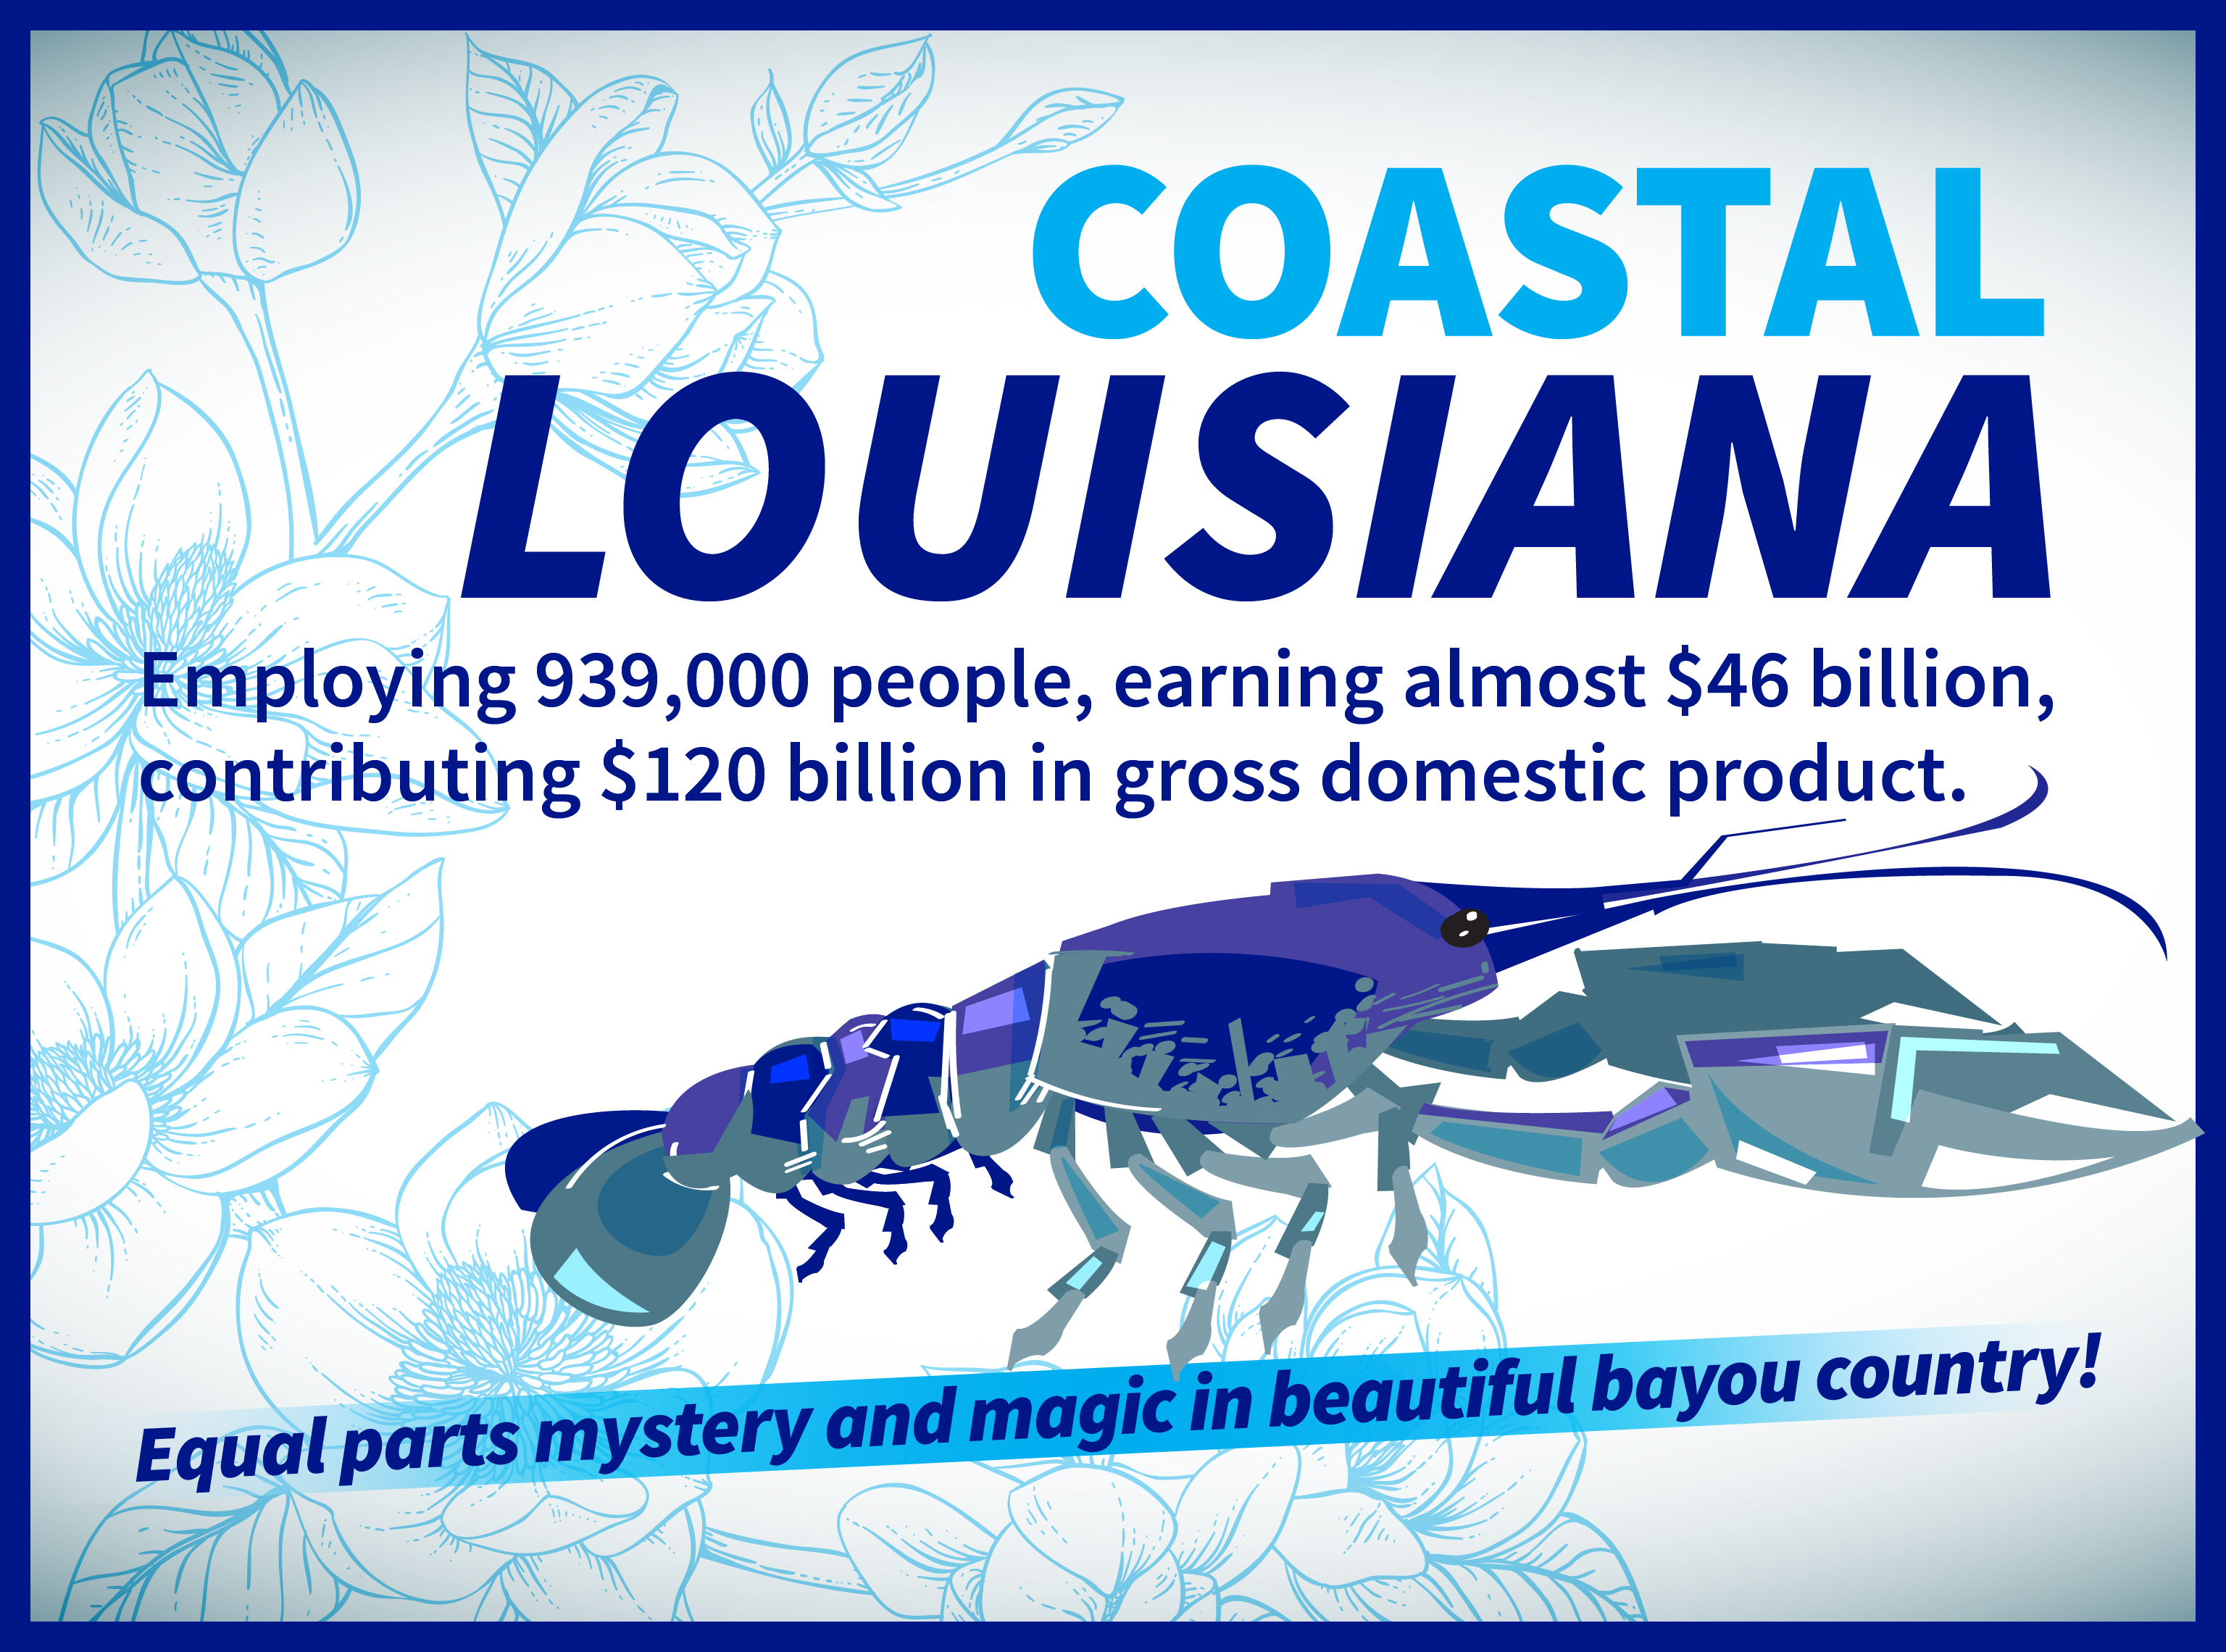 Louisiana graphic